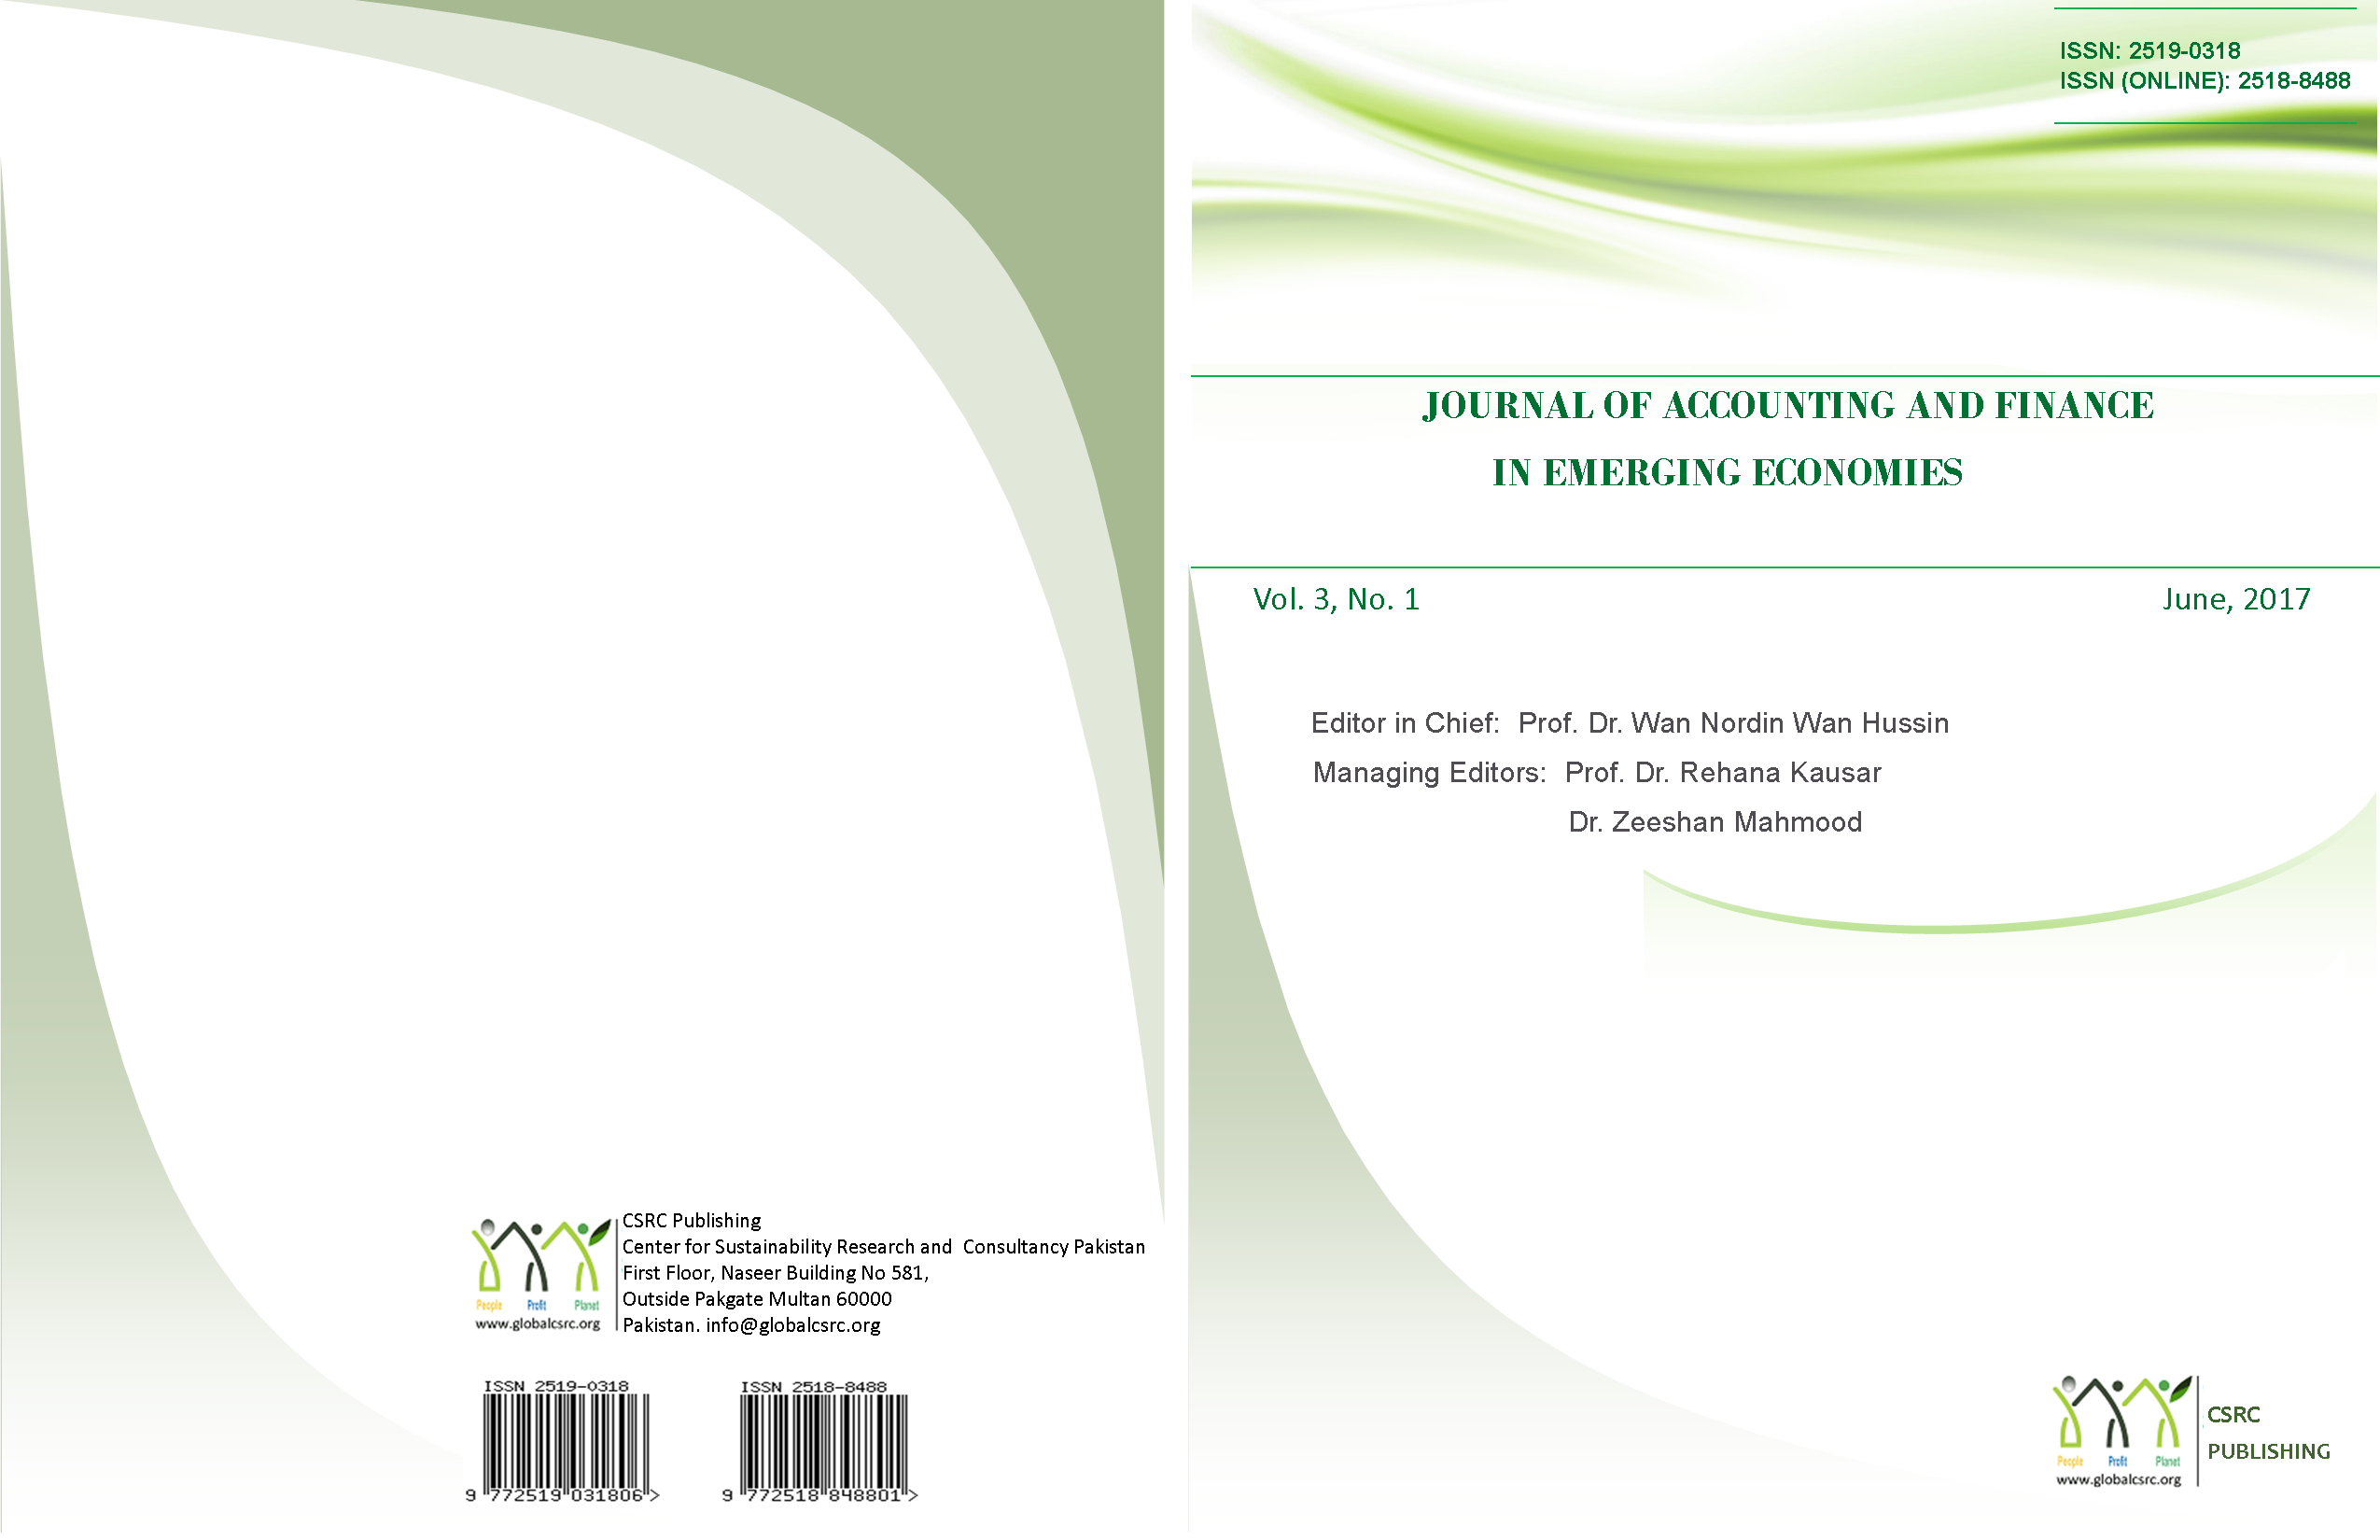 Journal of Accounting and Finance in Emerging Economies. Vol 3. Issue 1, June 2017